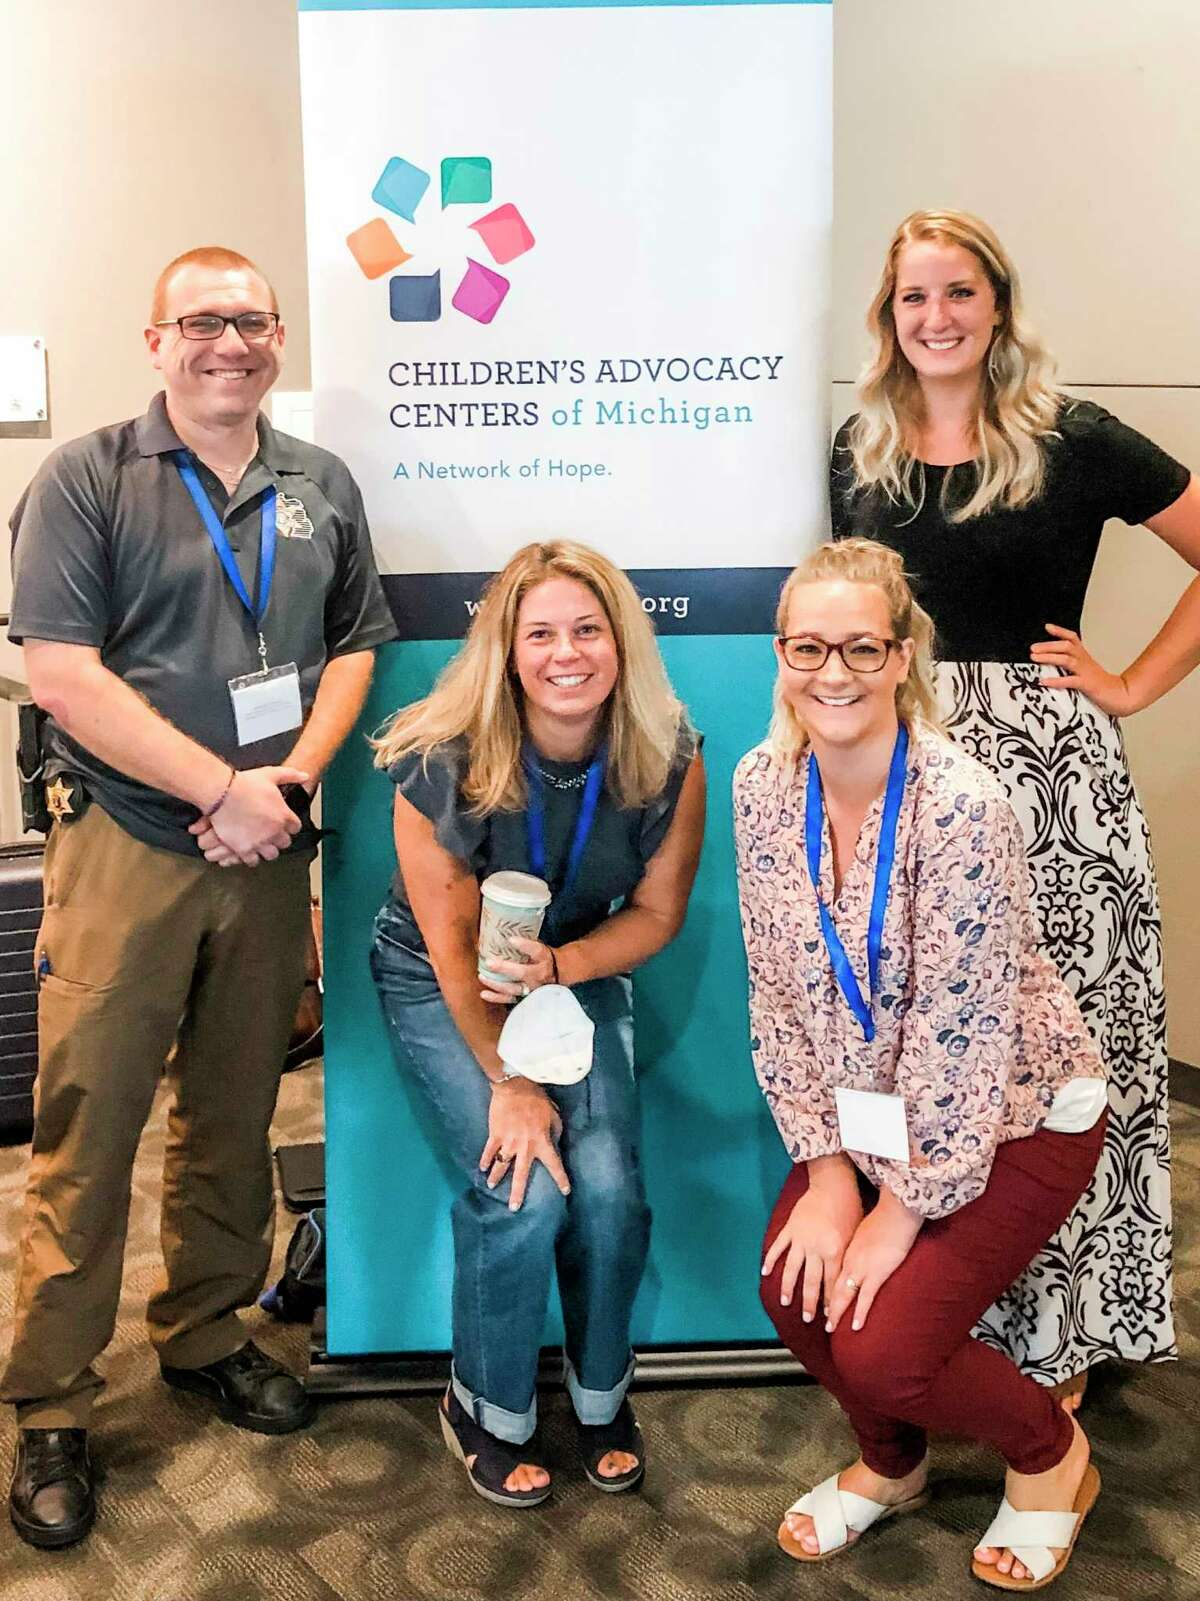 Deputy Alex Schajter, Manistee County Sheriff's Office (left); Christina Thompson, Manistee County Child Advocacy Center forensic interviewer; Chelsea Medacco, MCCAC outreach specialist/advocate; and Kelli Petit, trauma therapist, attended the 11th annual Child AdvocacyConference in Grand Rapids on Monday and Tuesday. (Courtesy photo)